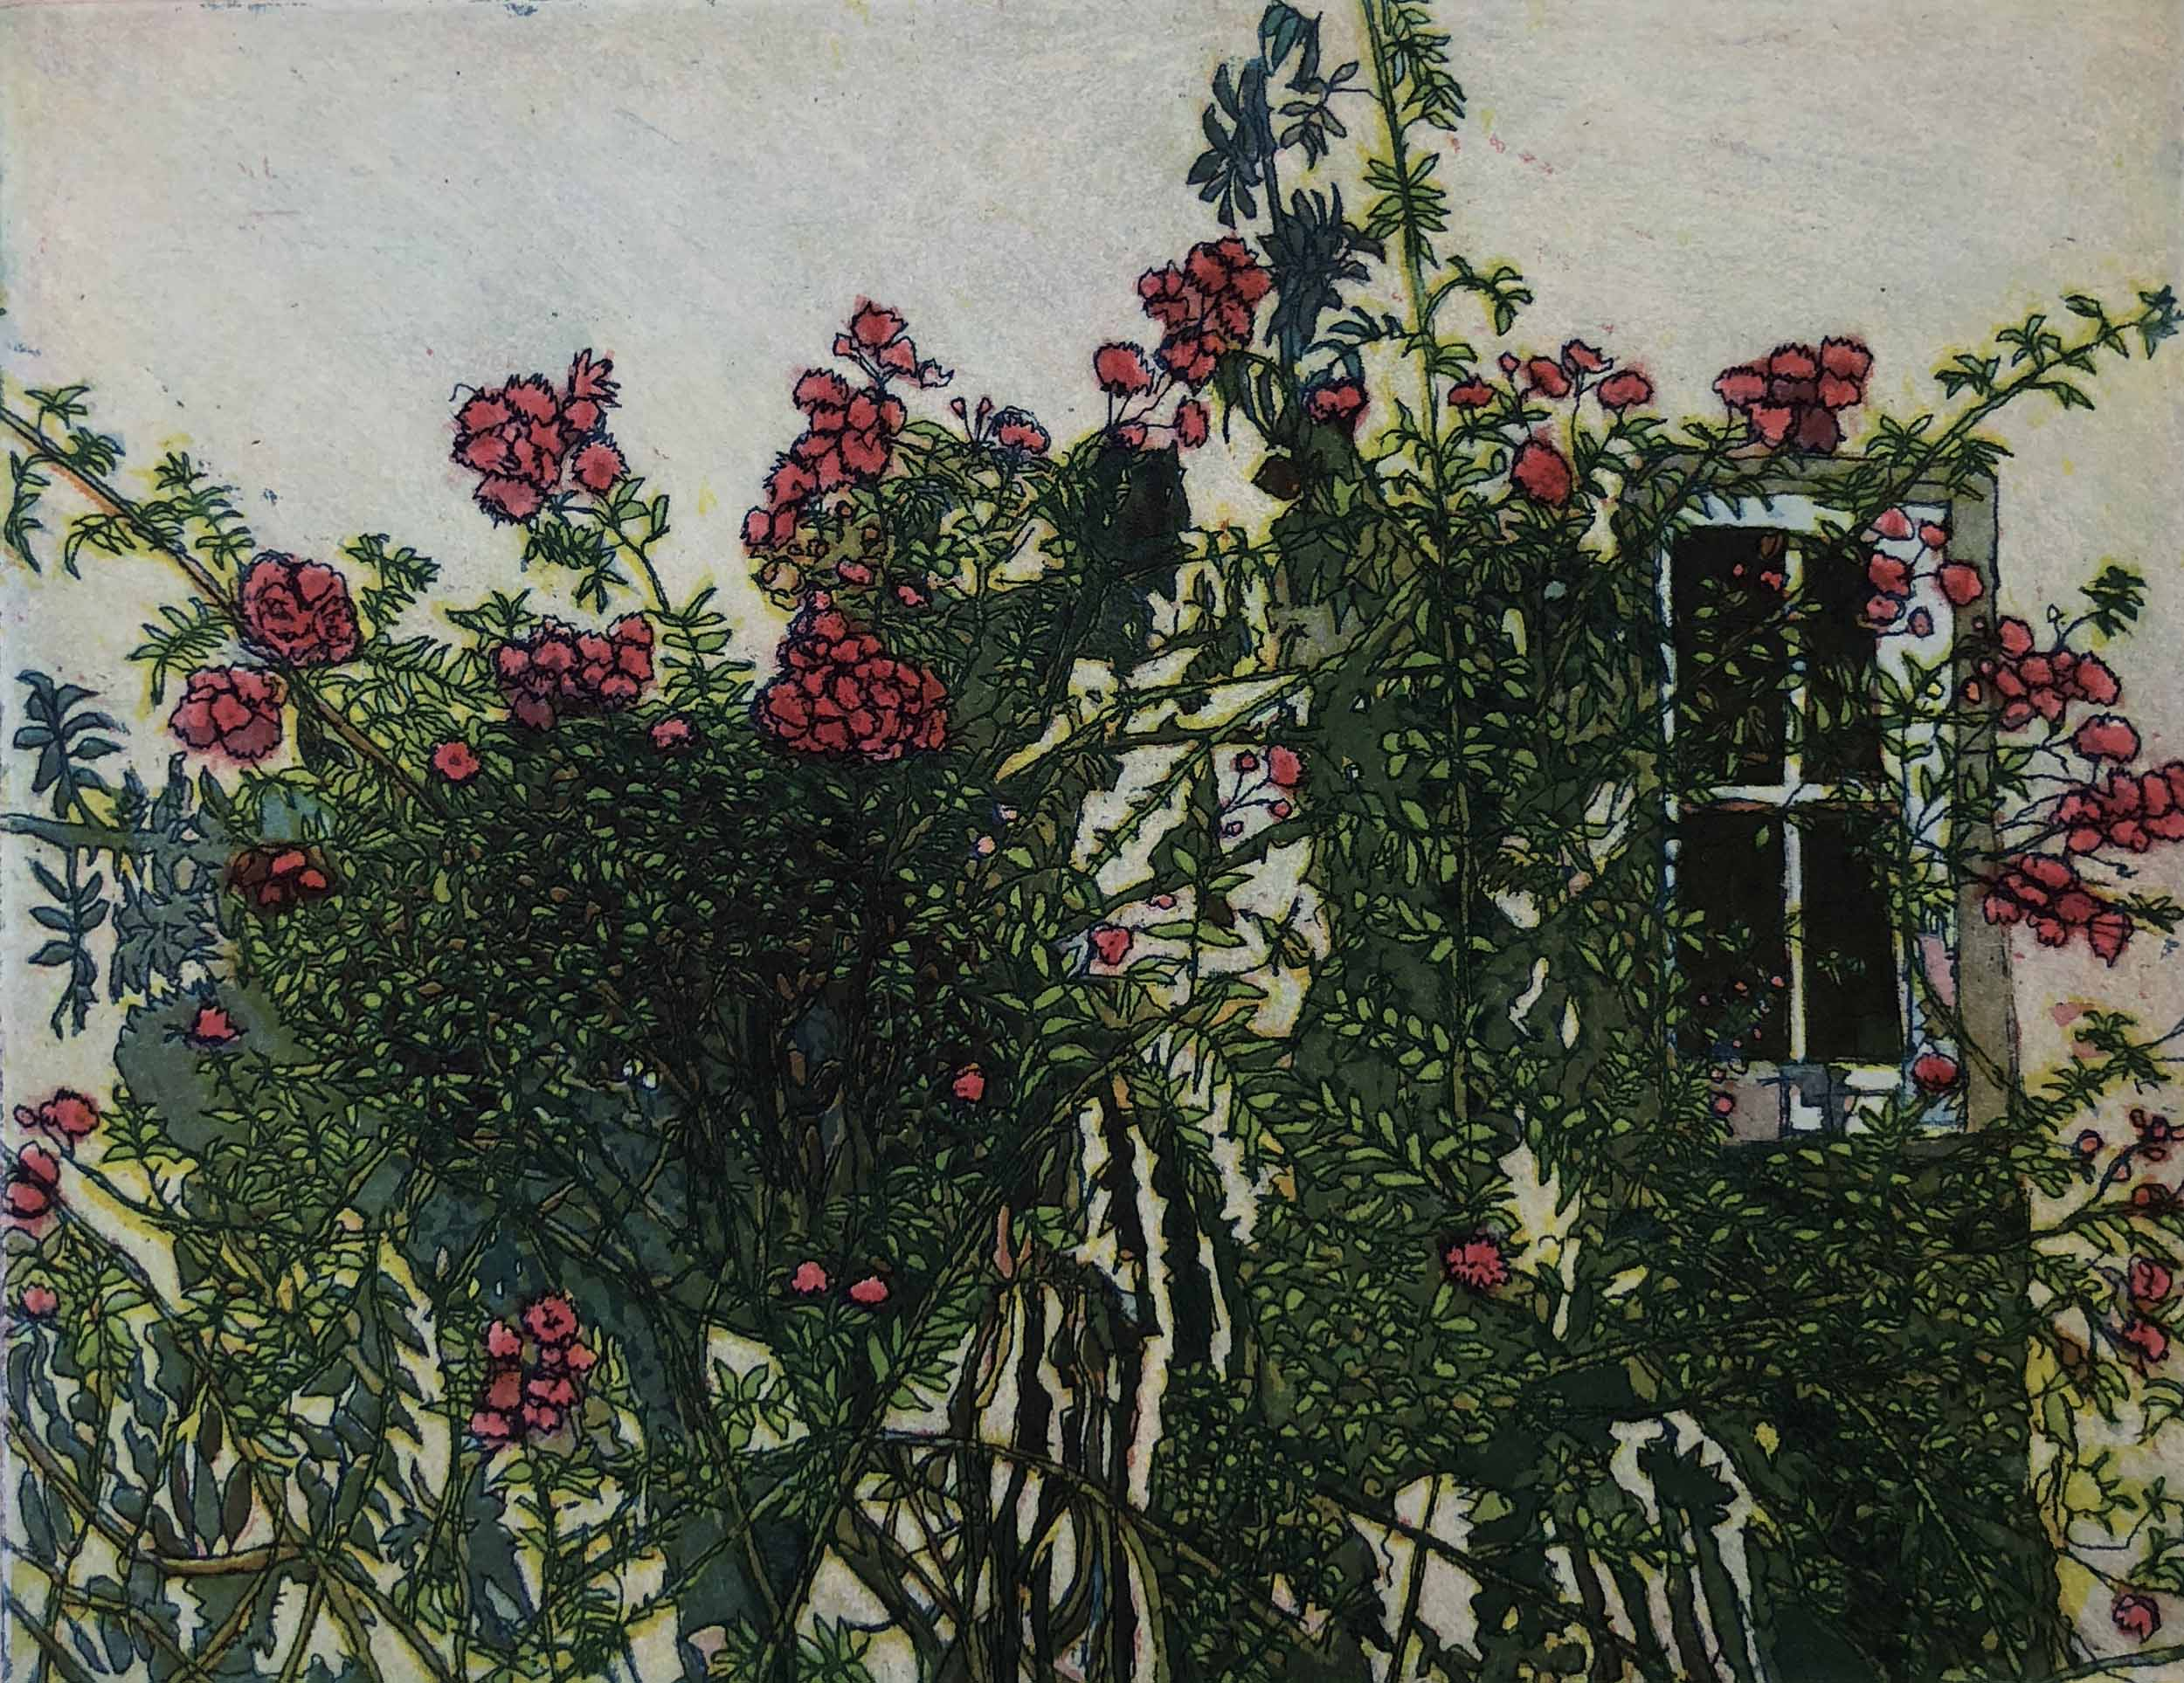 Travel Visions III: Wall of Roses ( Irland)